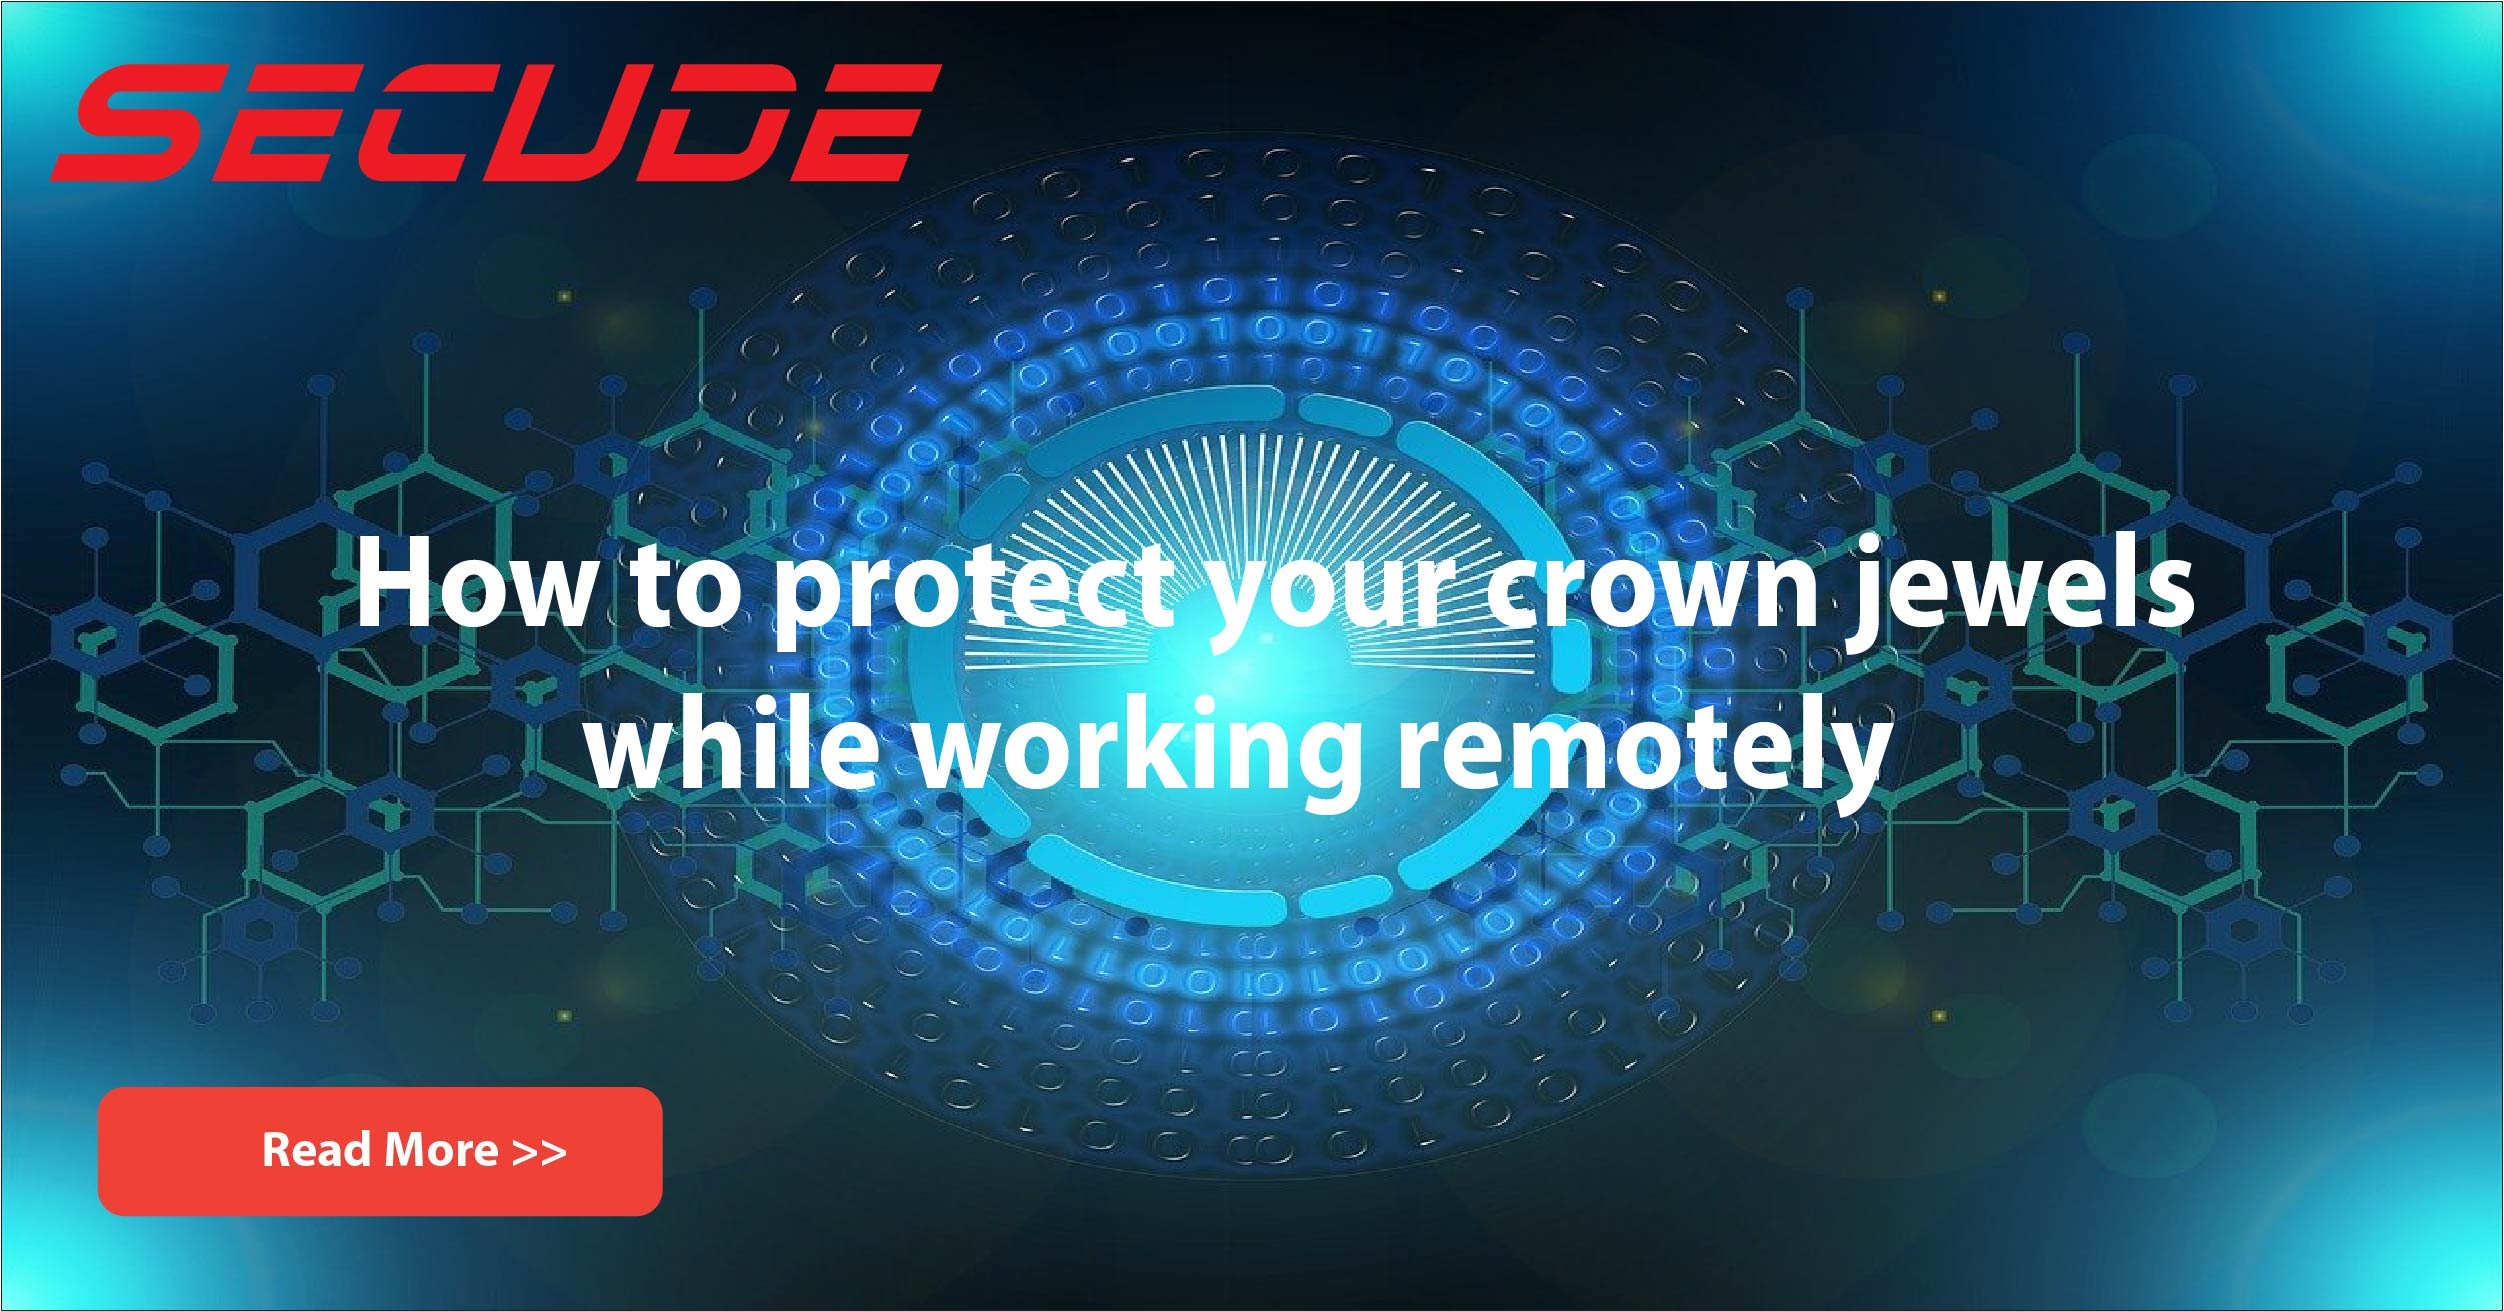 Protect your crown jewels while working remotely